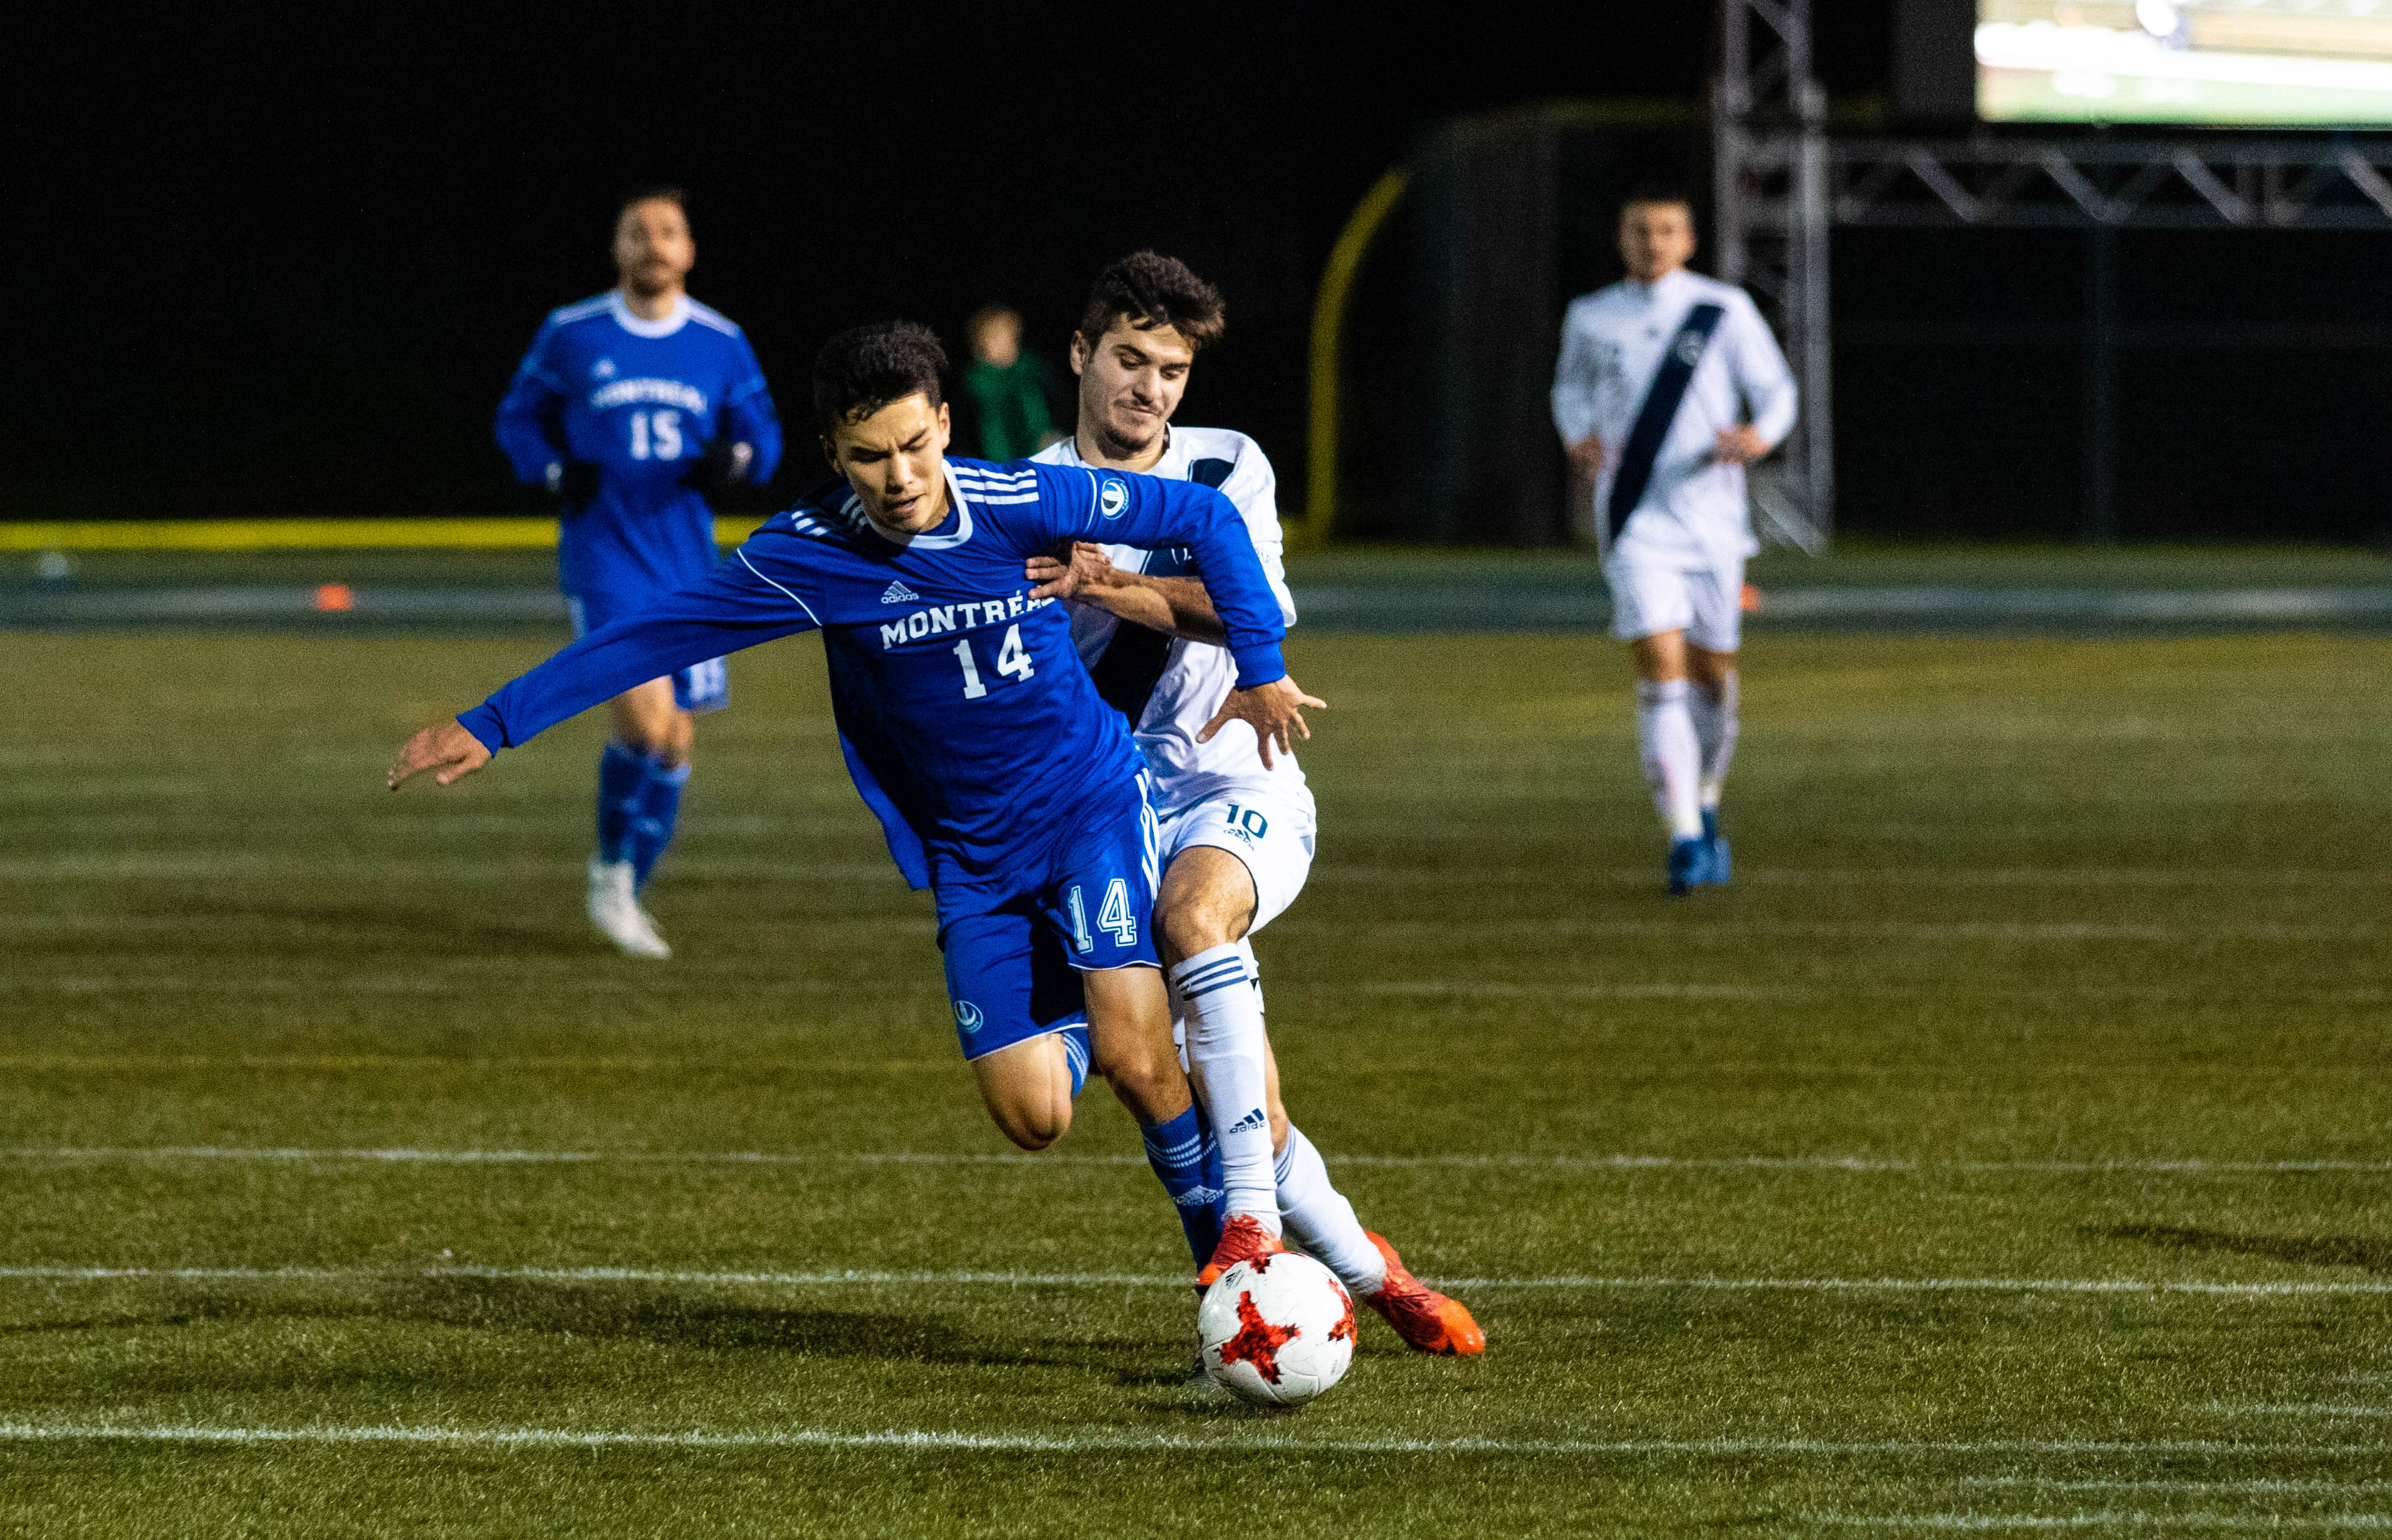 Trinity's Dominic Poletto tussles for the ball against Montreal's Pierre Lamothe.